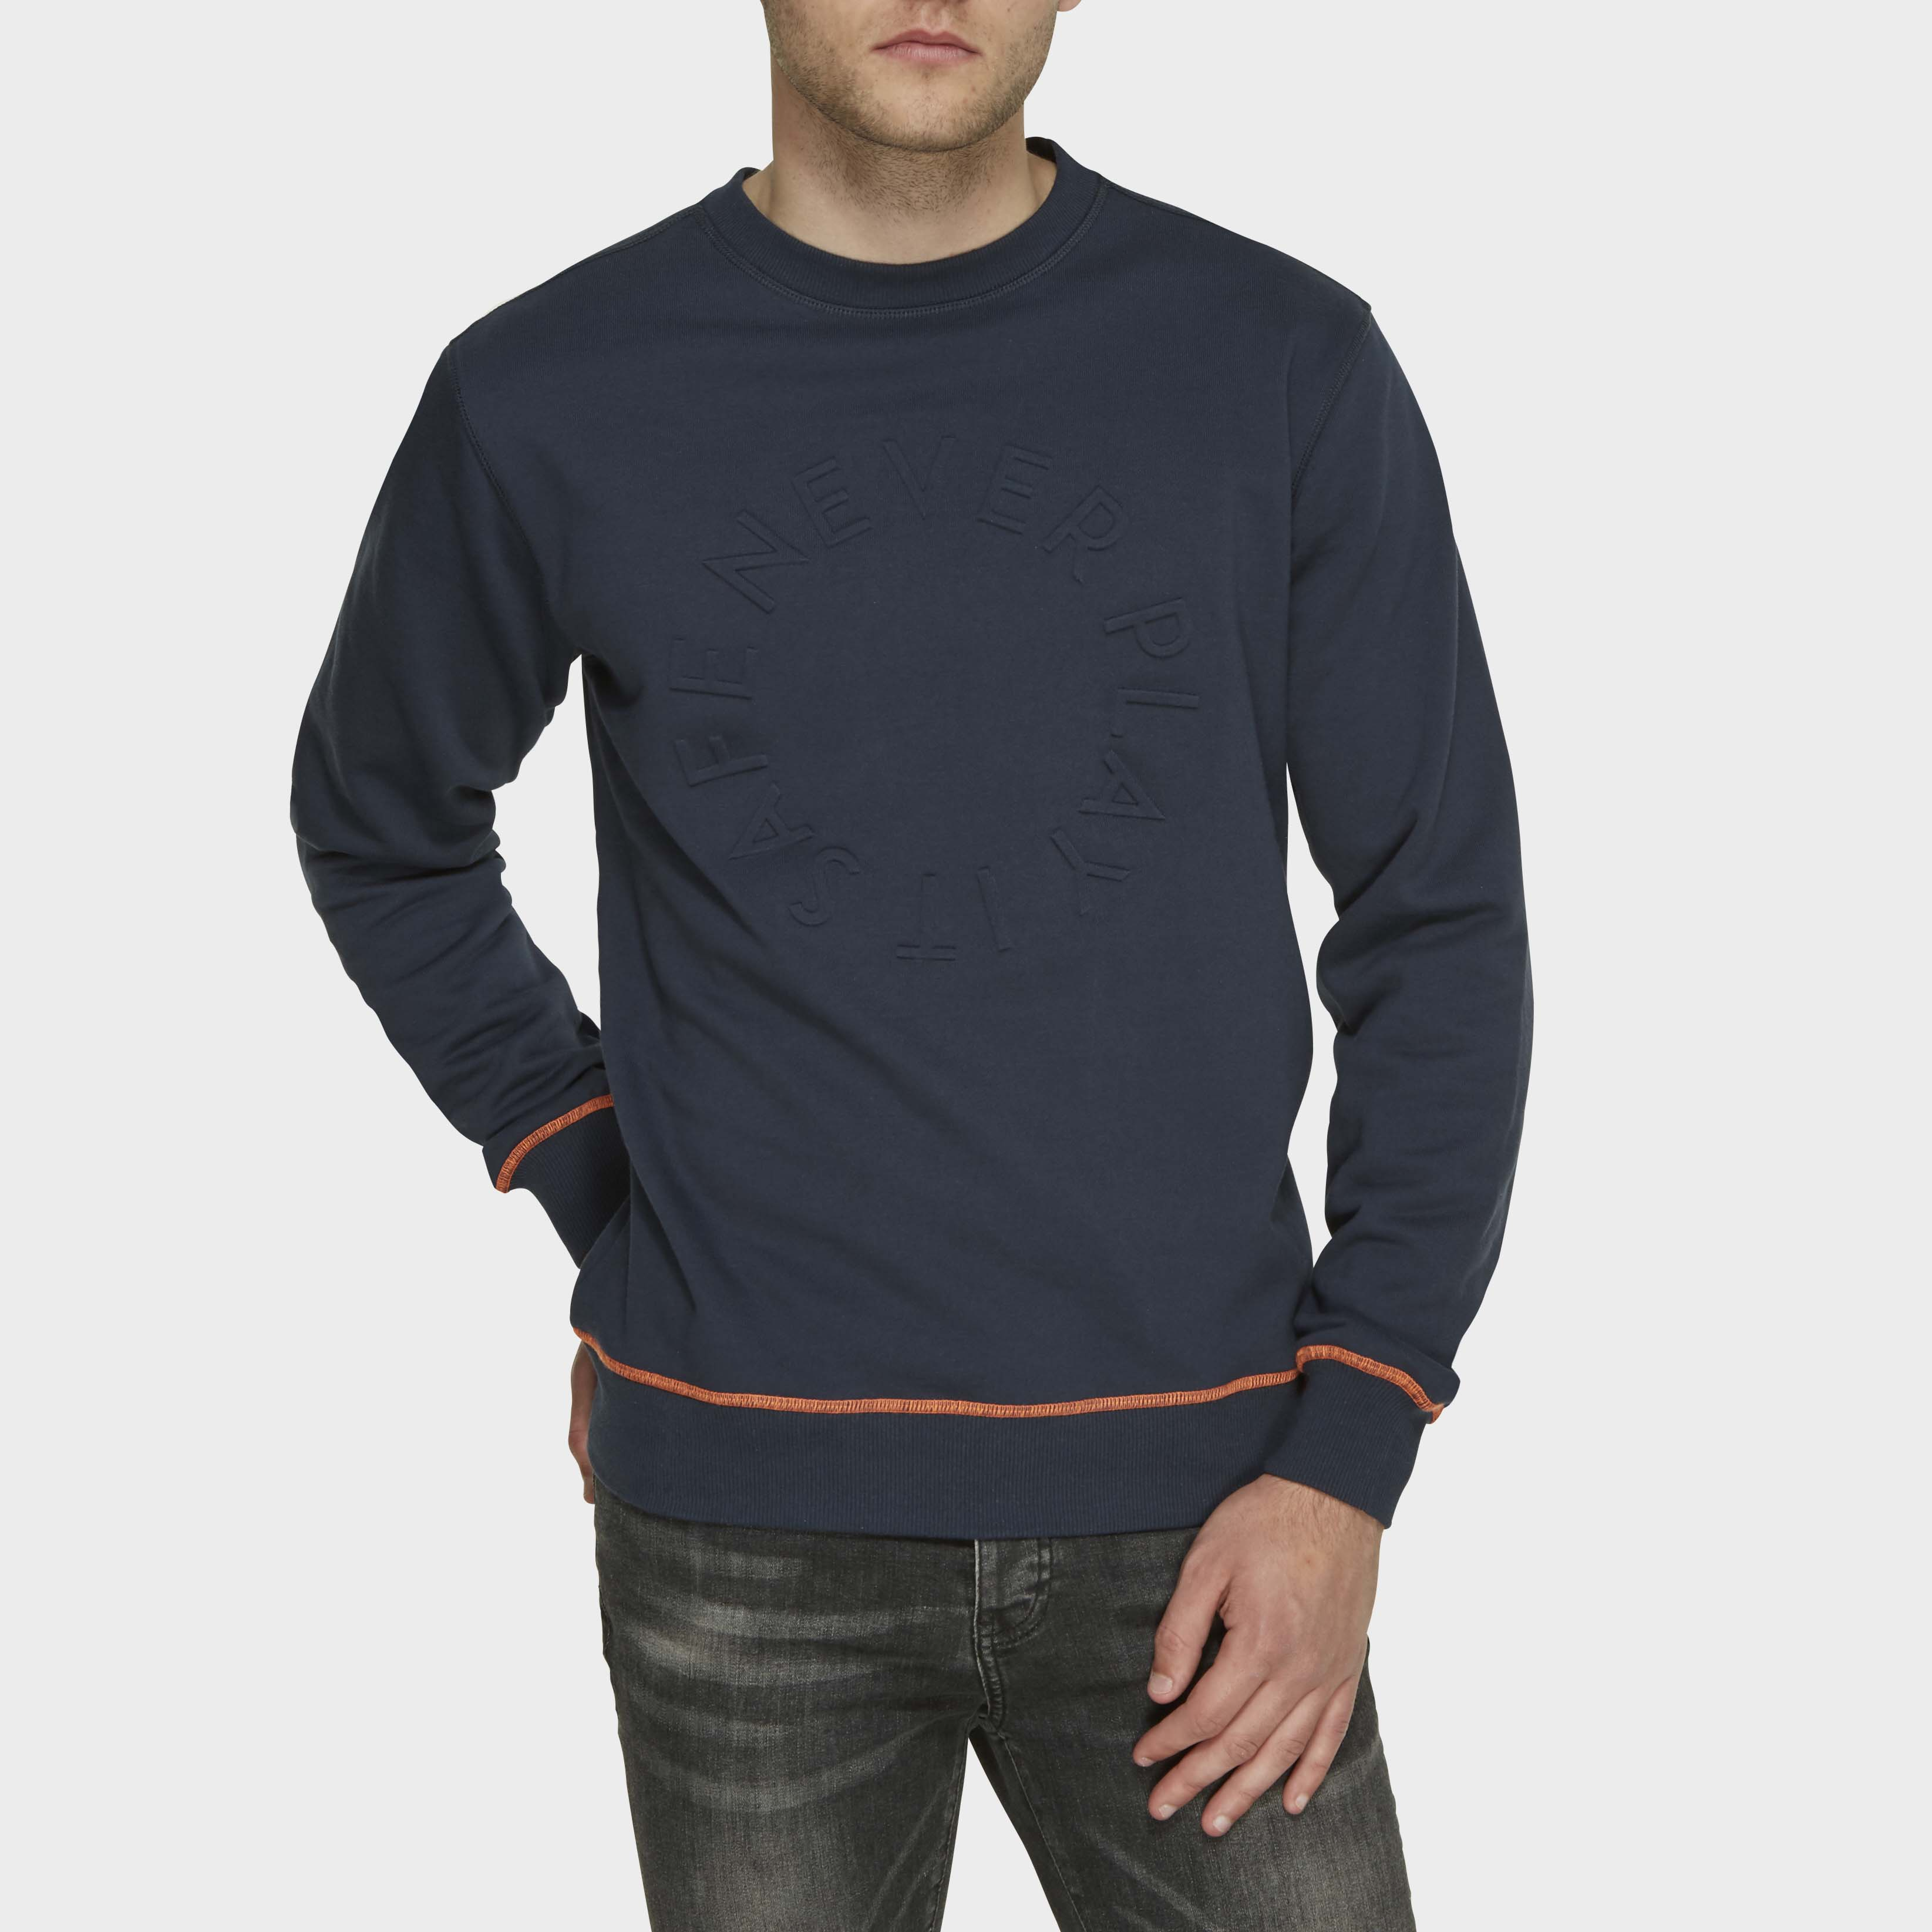 Ted | Sweater round-neck navy blue